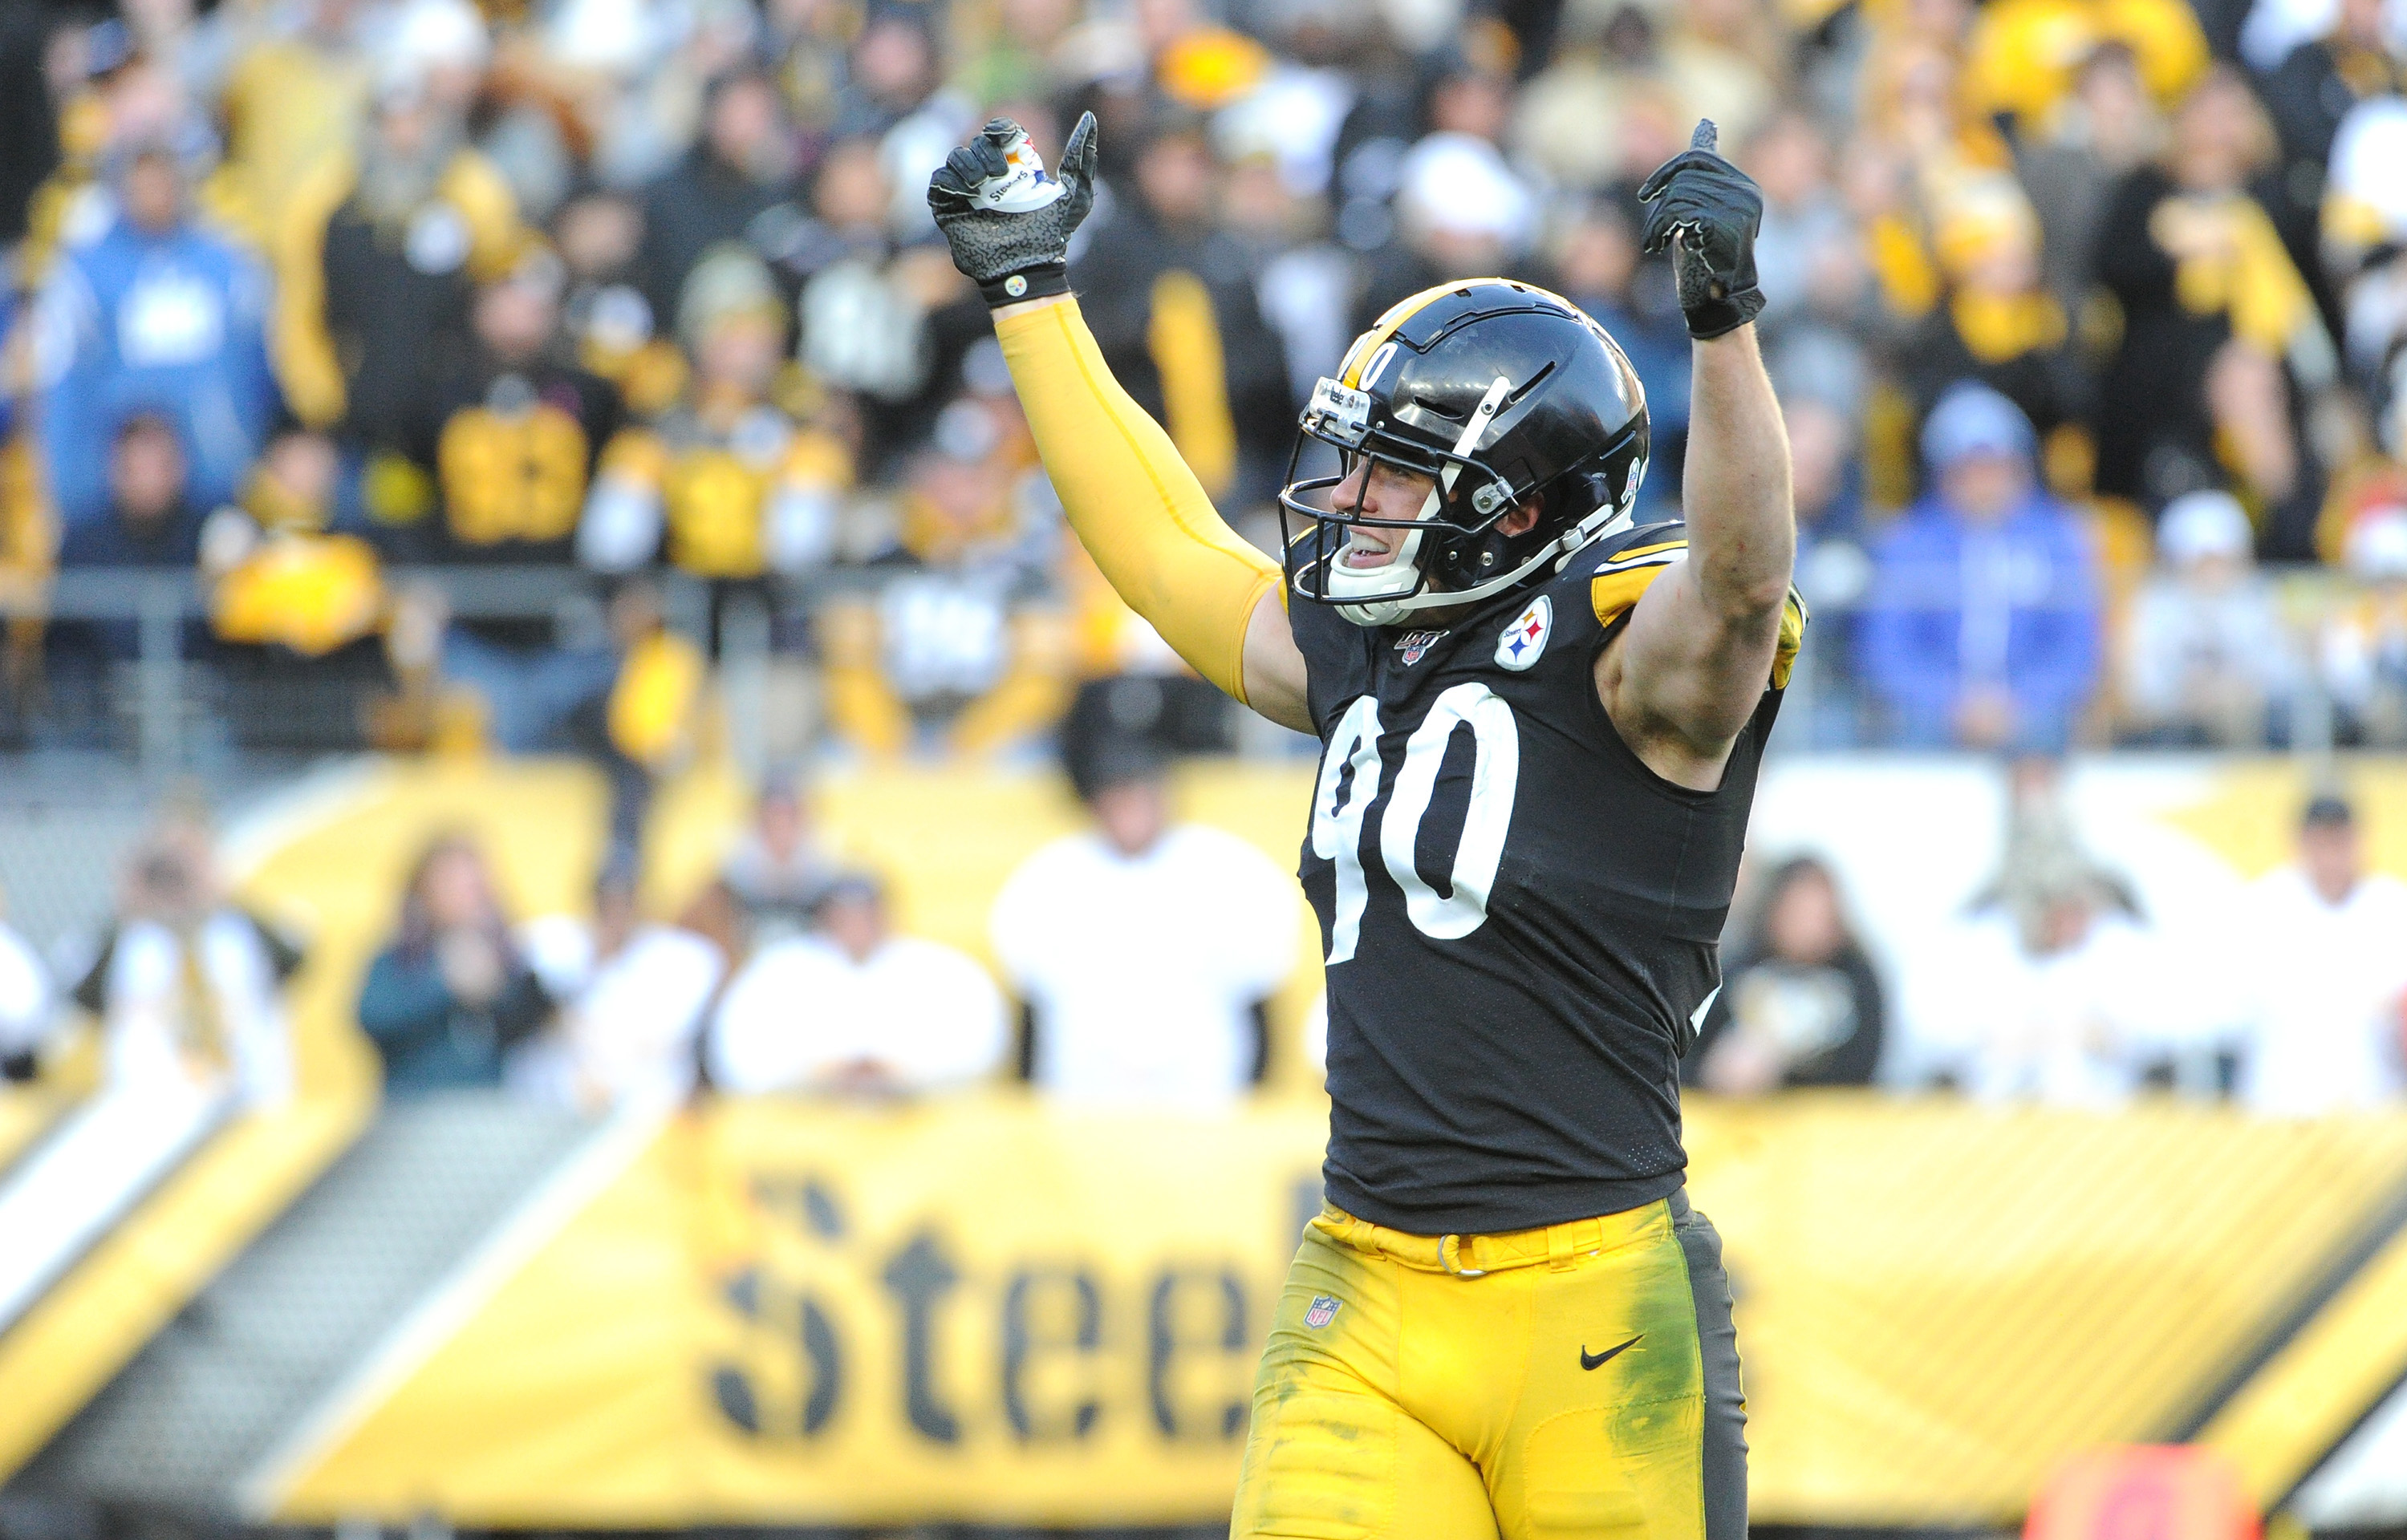 Strackbein Mailbag: Is This Mike Tomlin's Most Impressive Season? Watt's DPOY Rank, and More